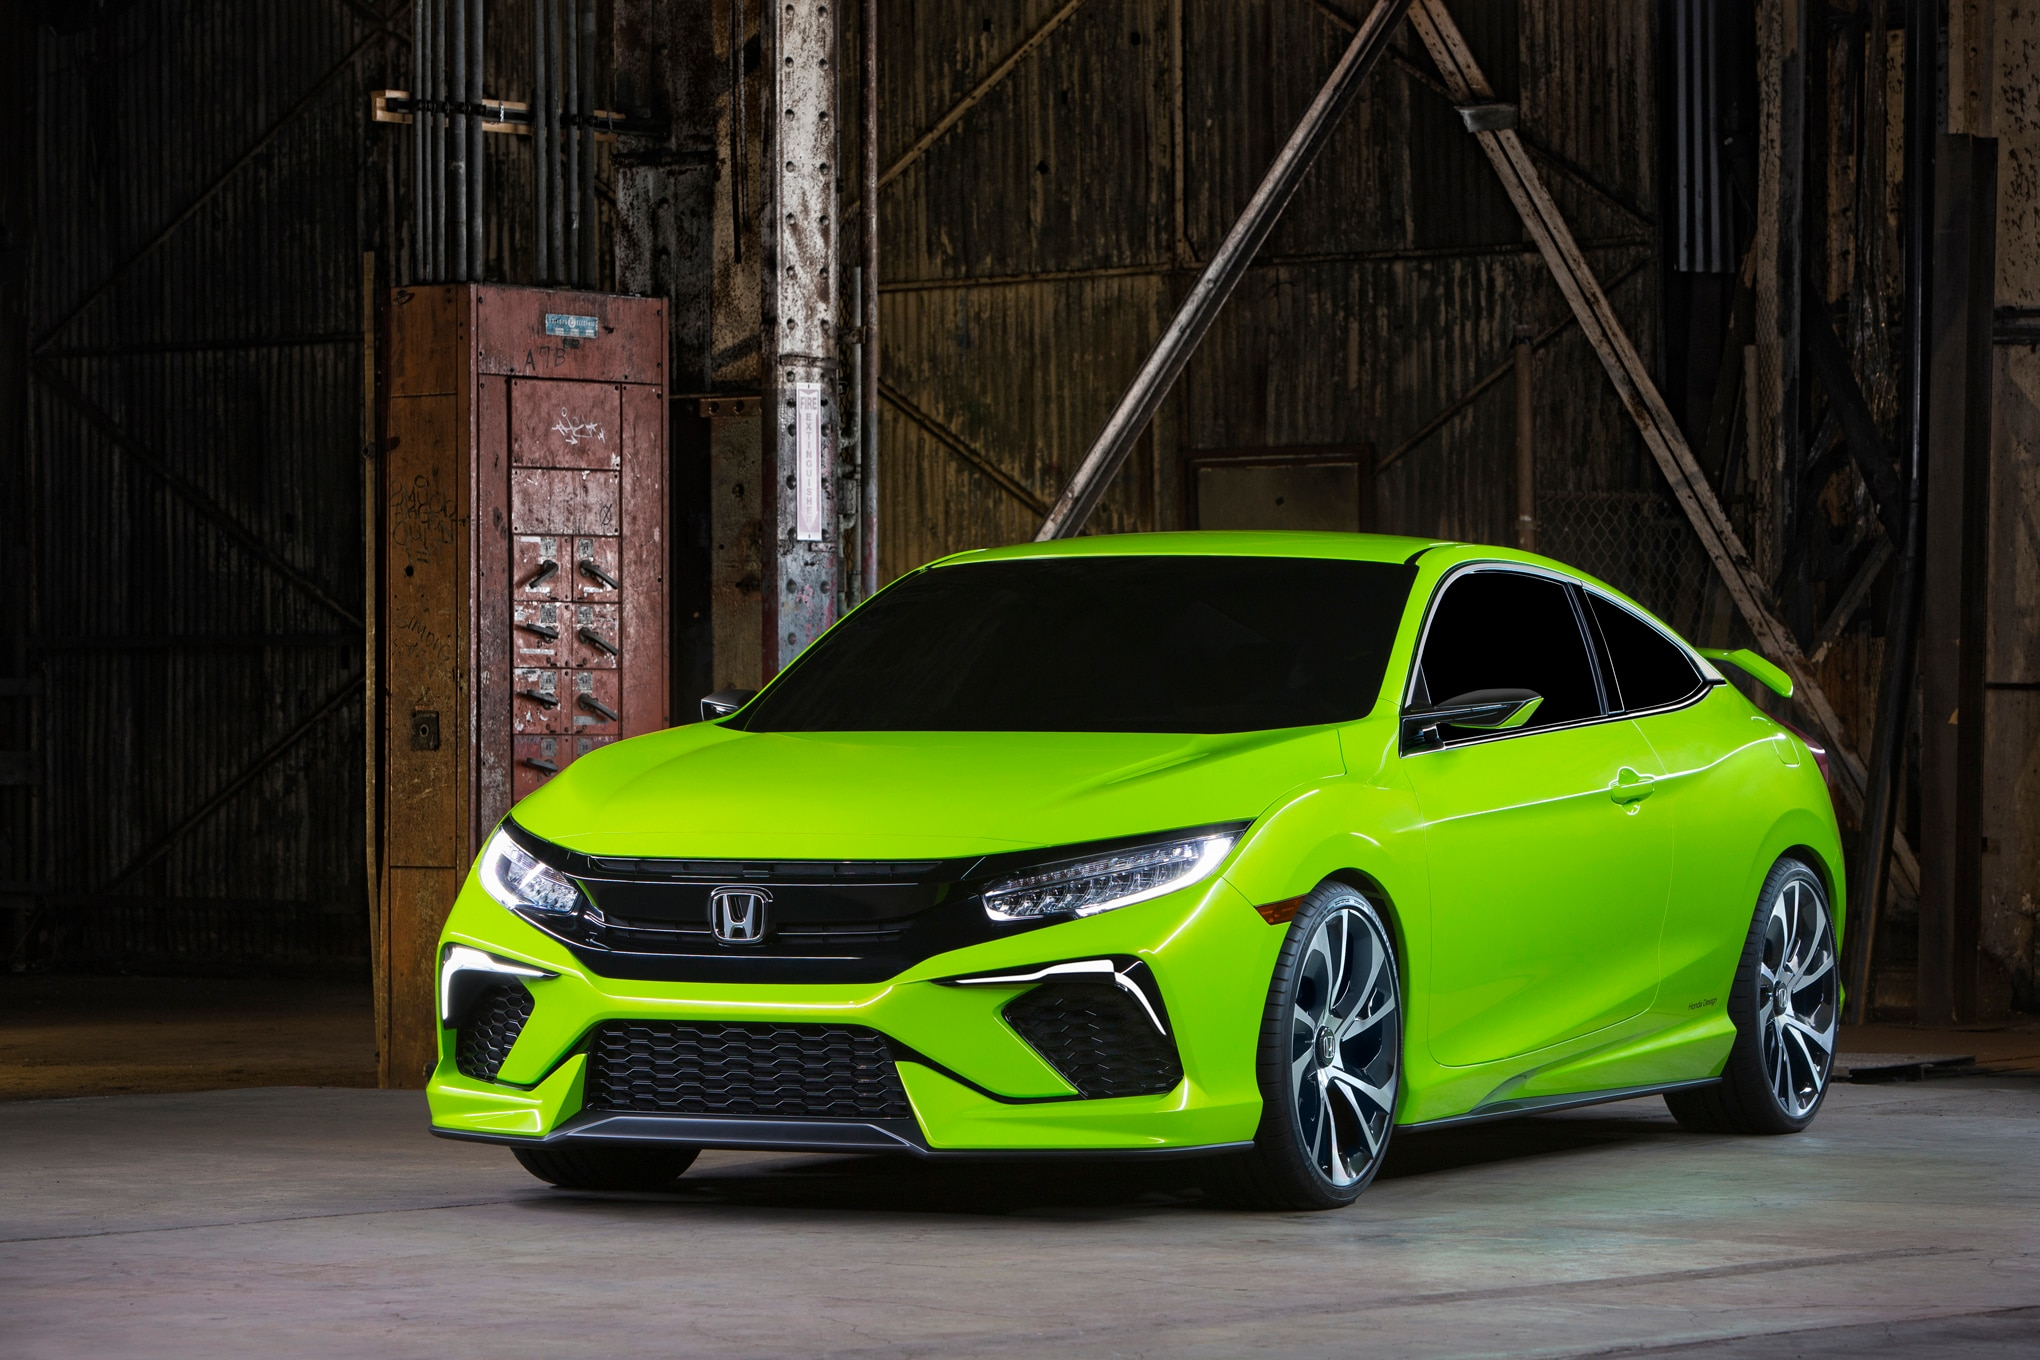 Honda Wants Enthusiasts To Get Excited About The Civic Again. To That End,  The Civic Type R Comes To The U.S. At Last And Will Make More Than 300 Hp  From A ...